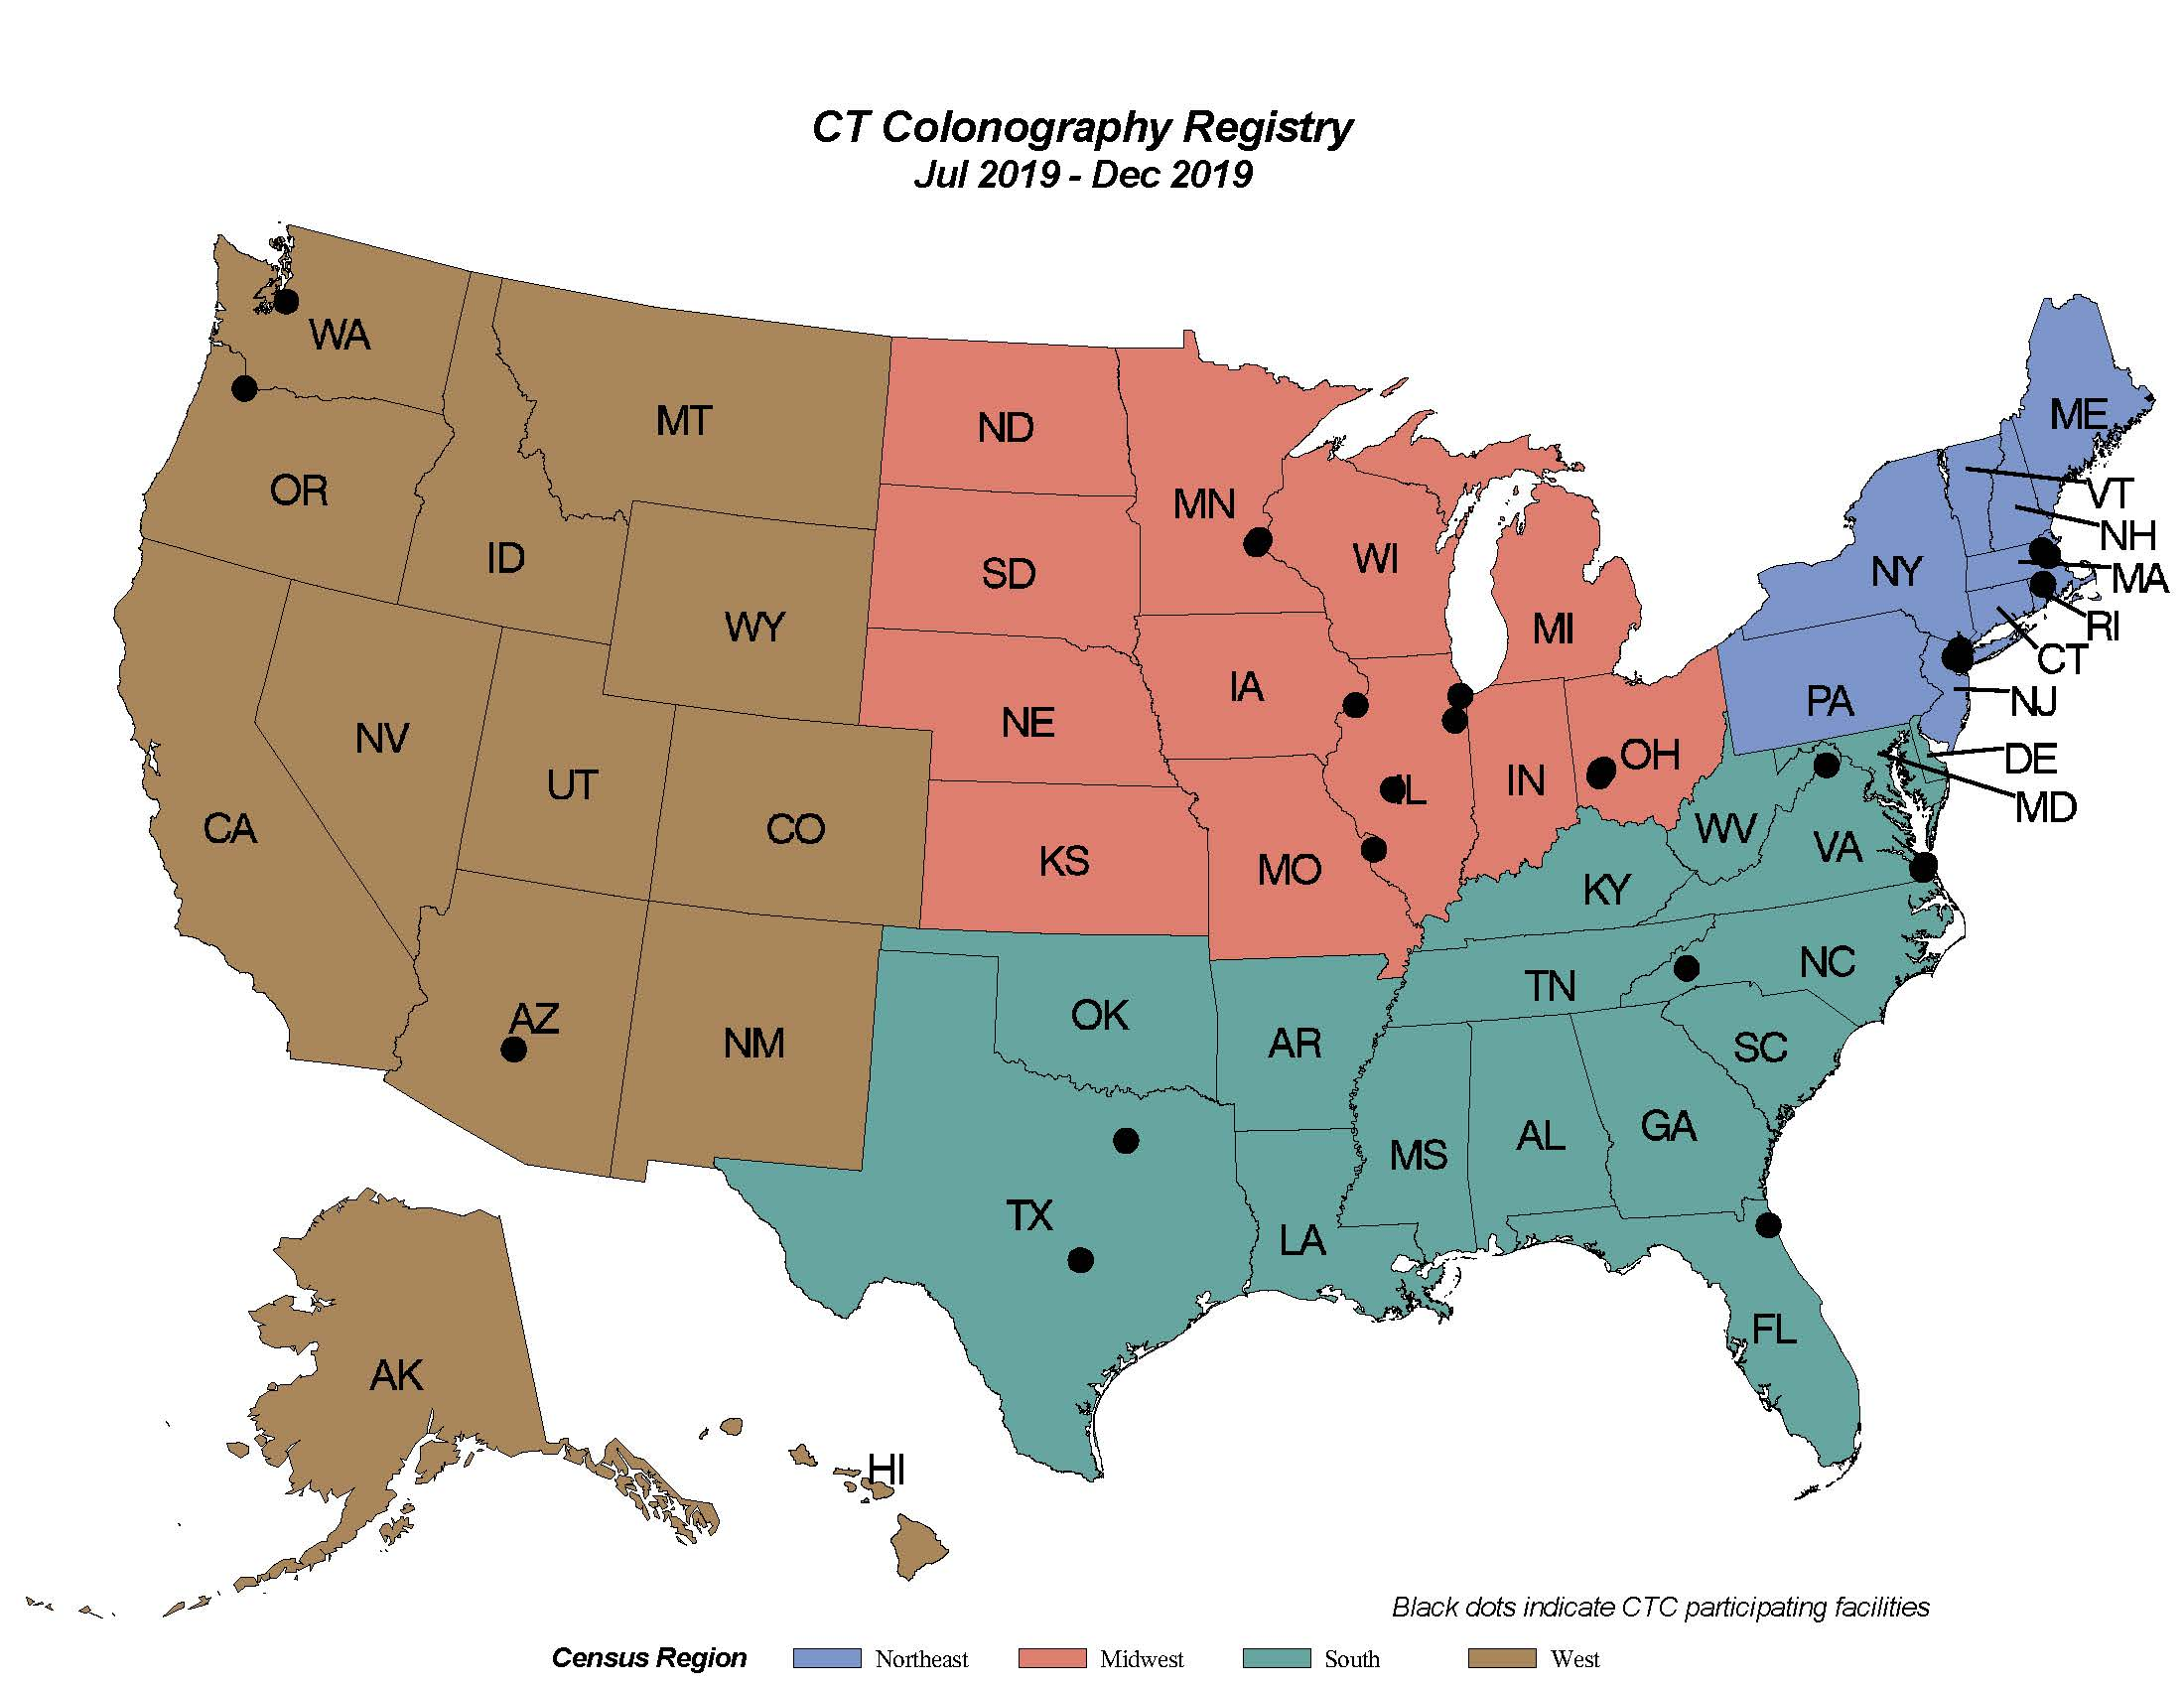 CT Colonography Registry Map